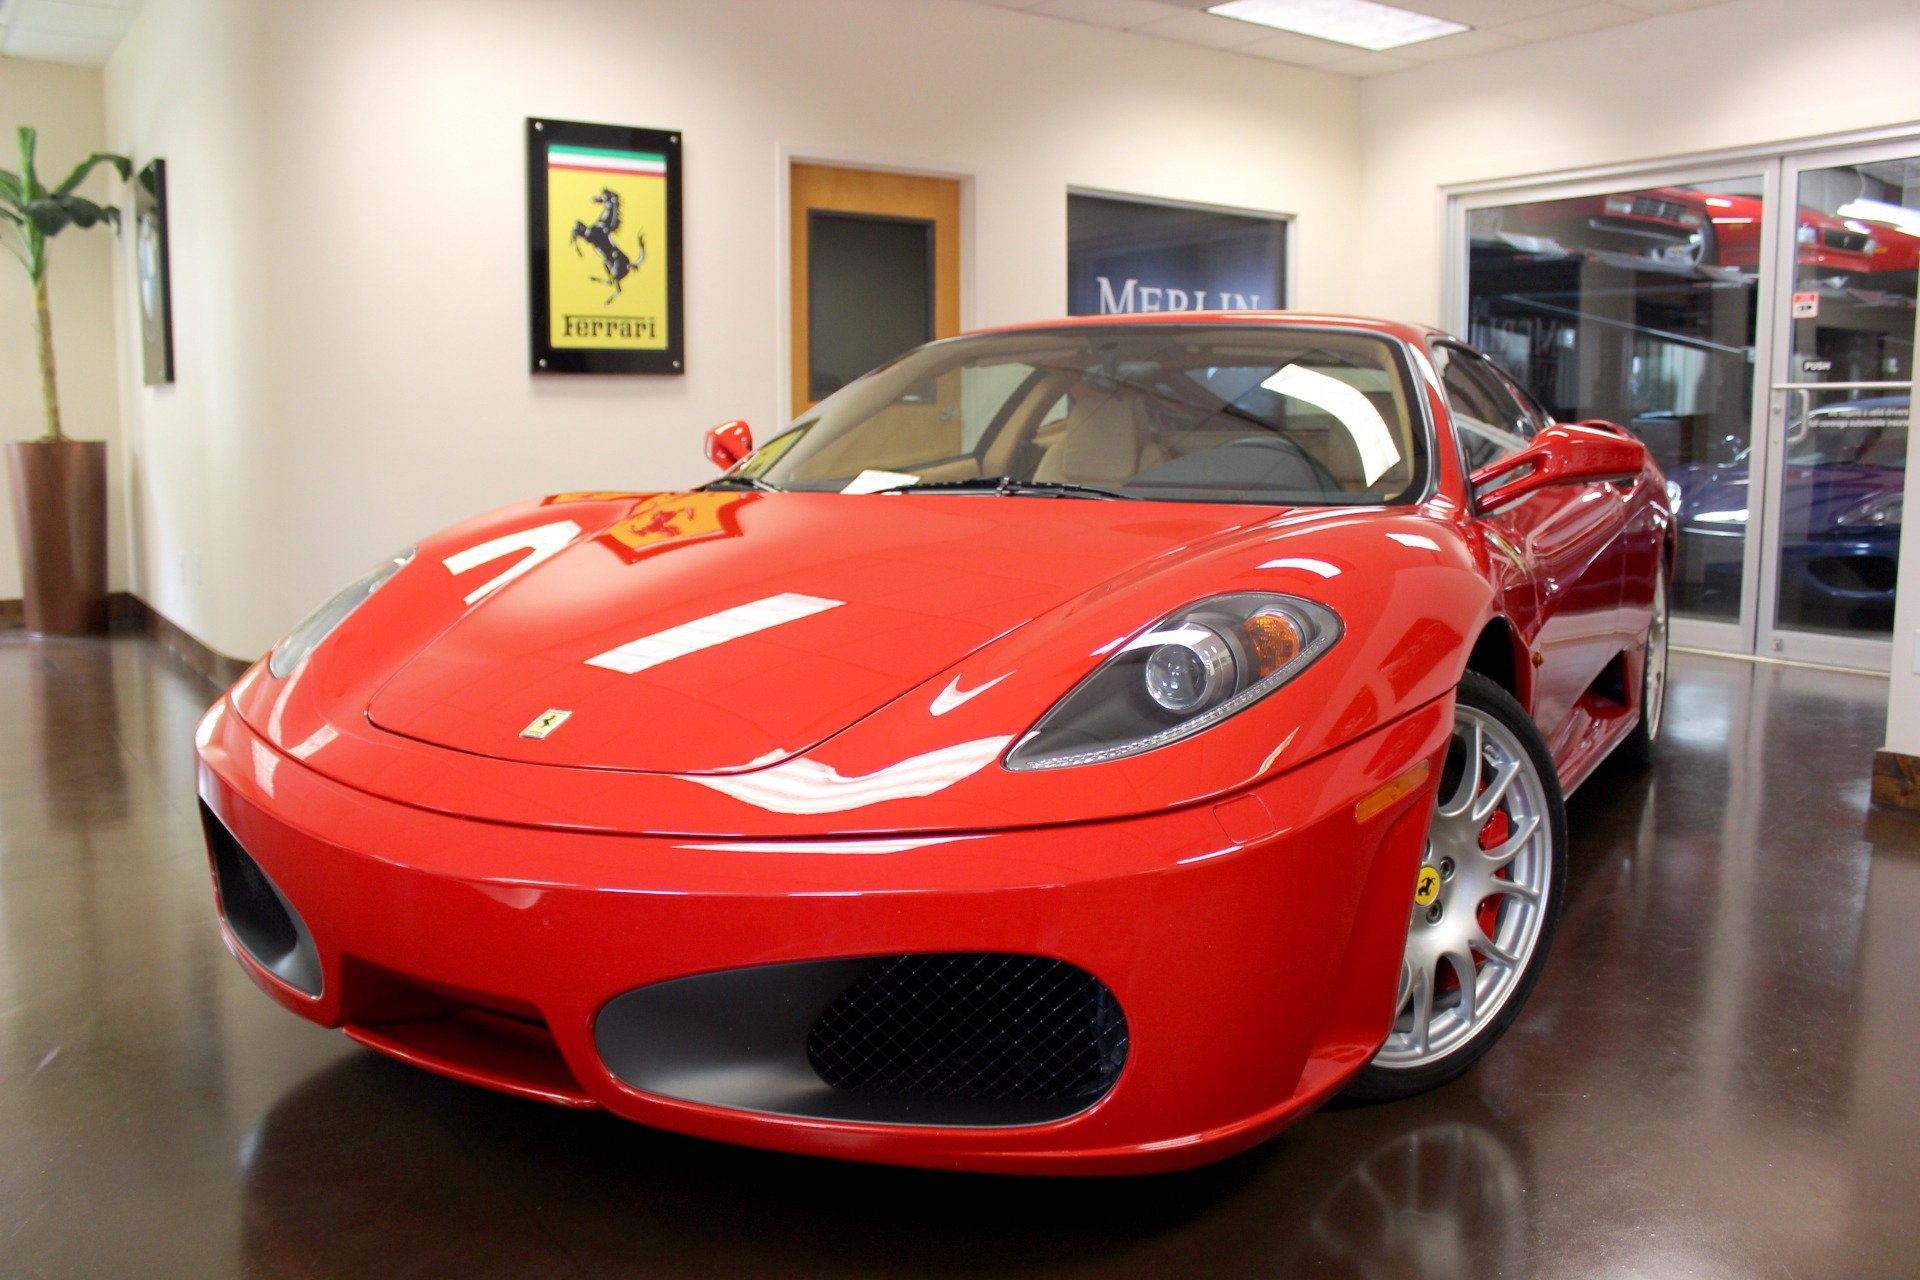 car motor news year paris models at launches special deals by events ferrari edition lease bferrari shows anniversary